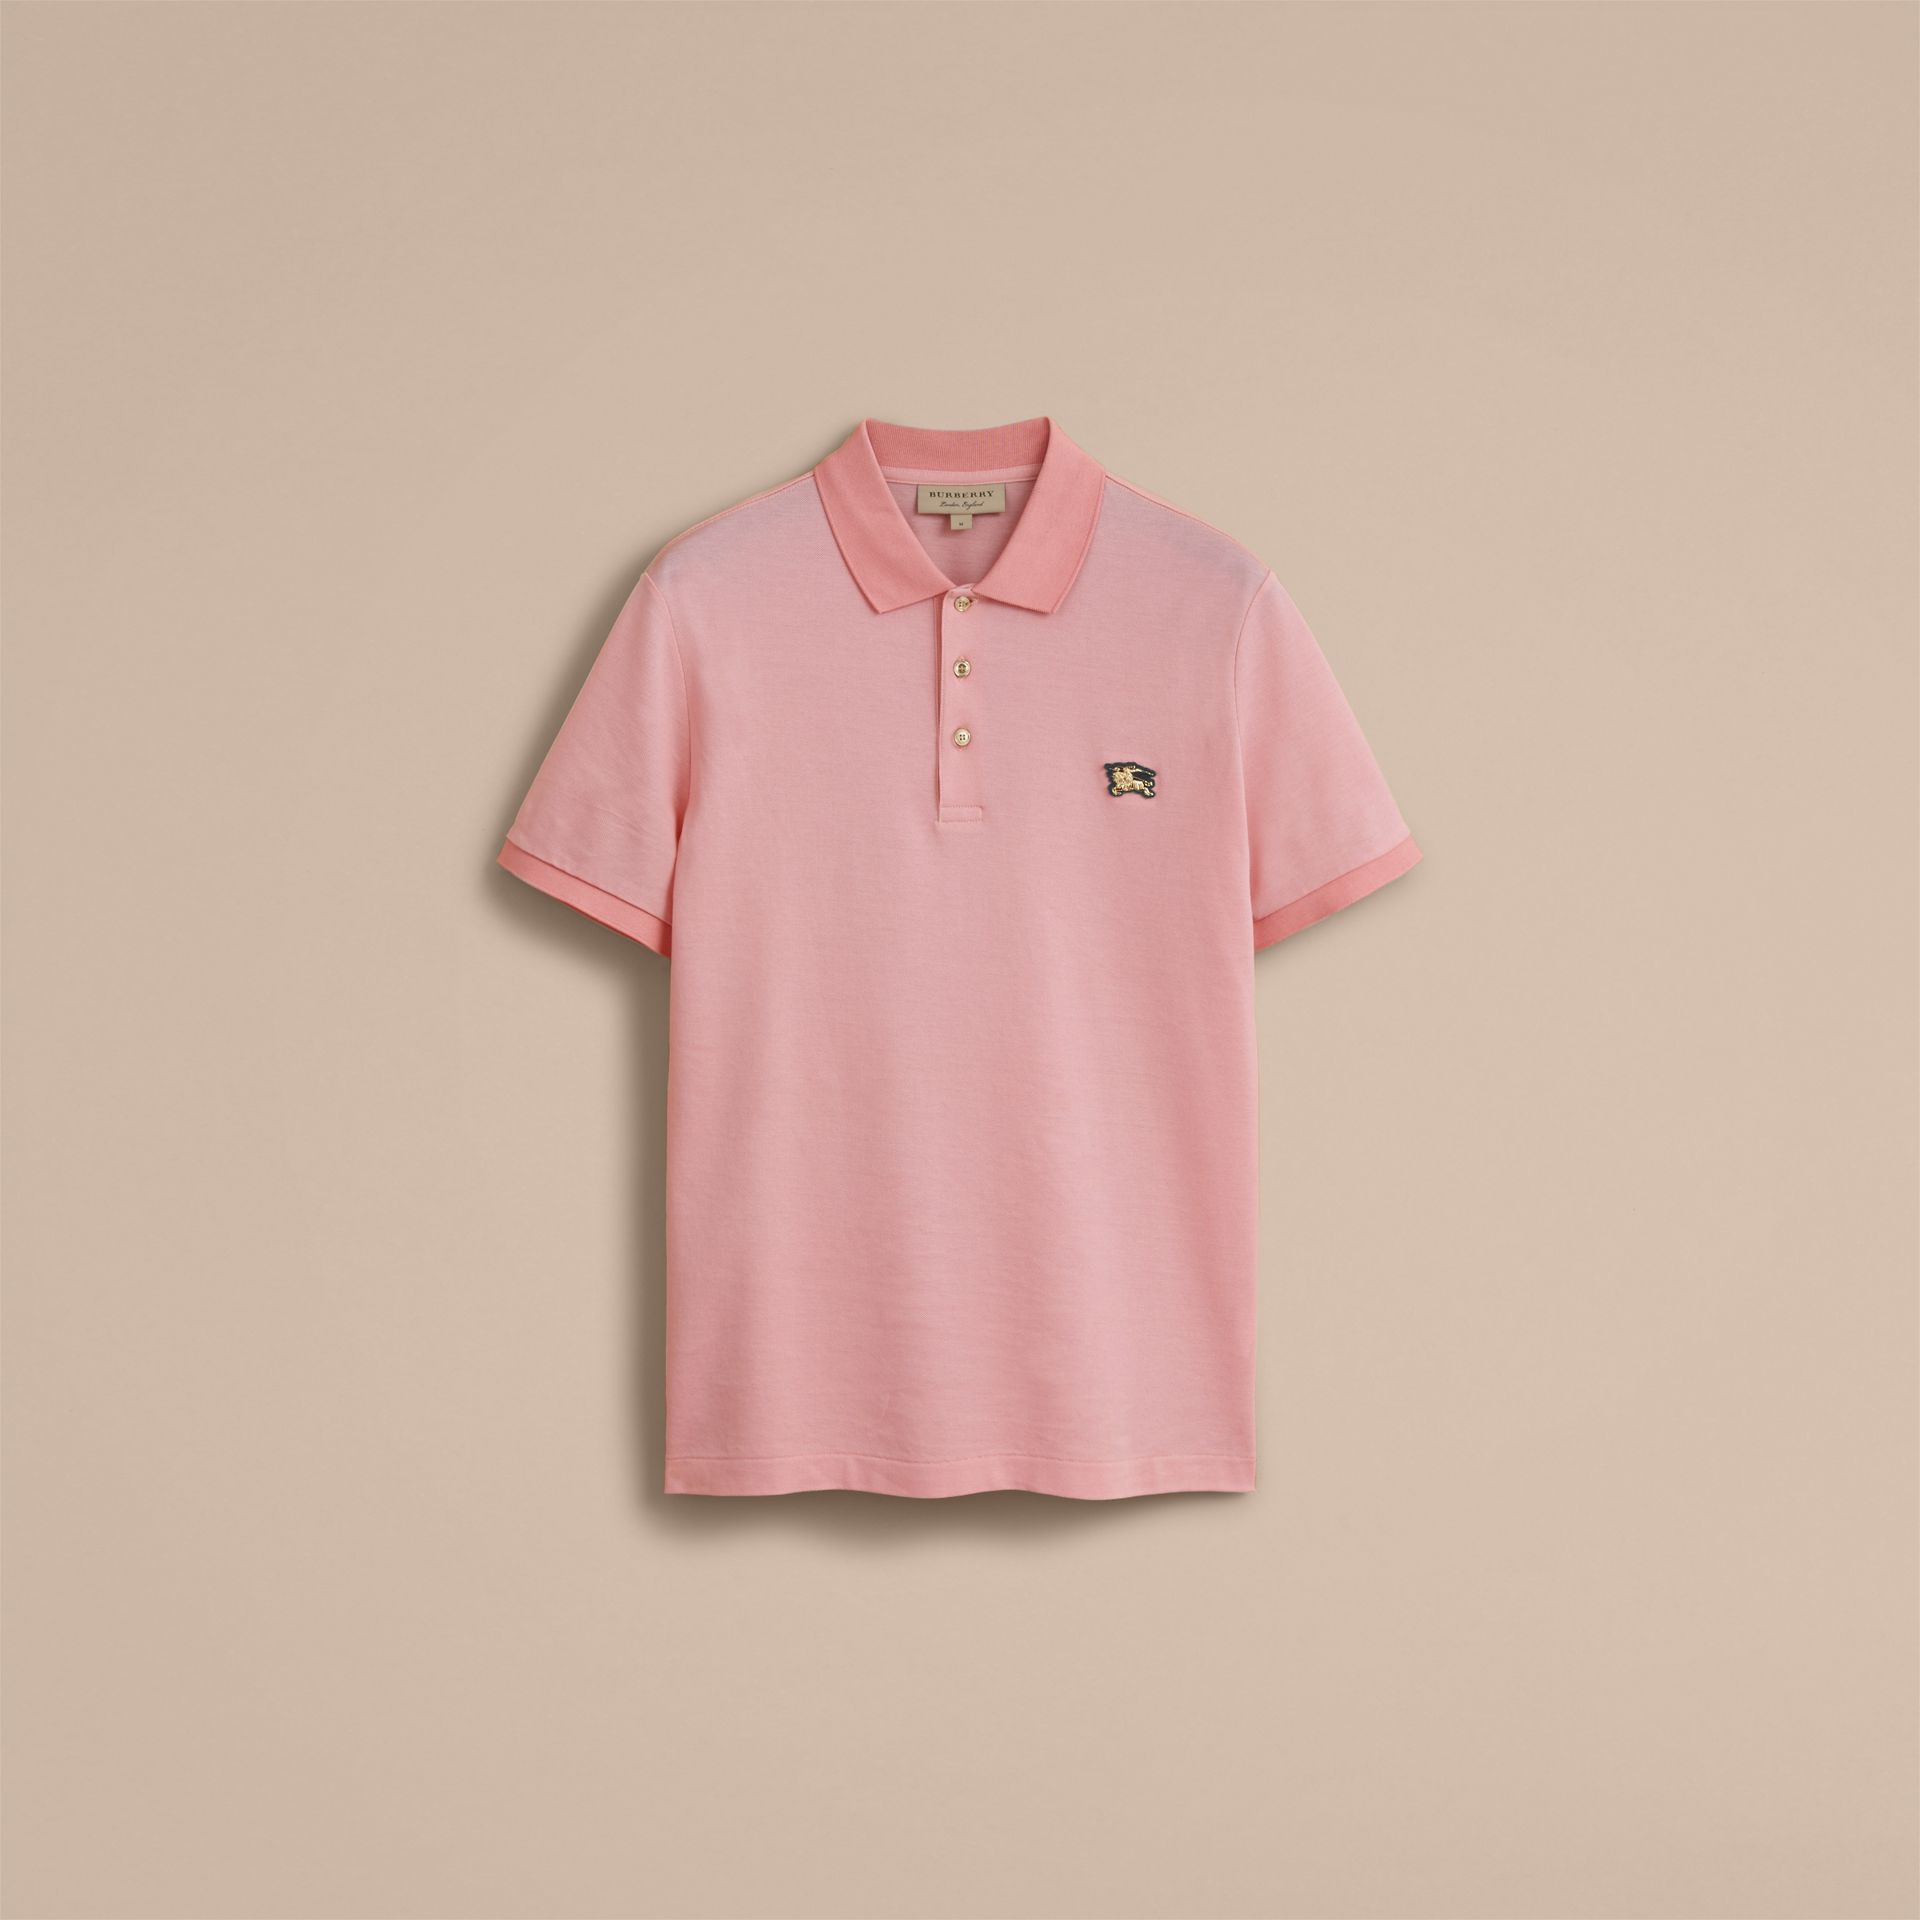 Cotton Piqué Polo Shirt in Chalk Pink - Men | Burberry Canada - gallery image 4